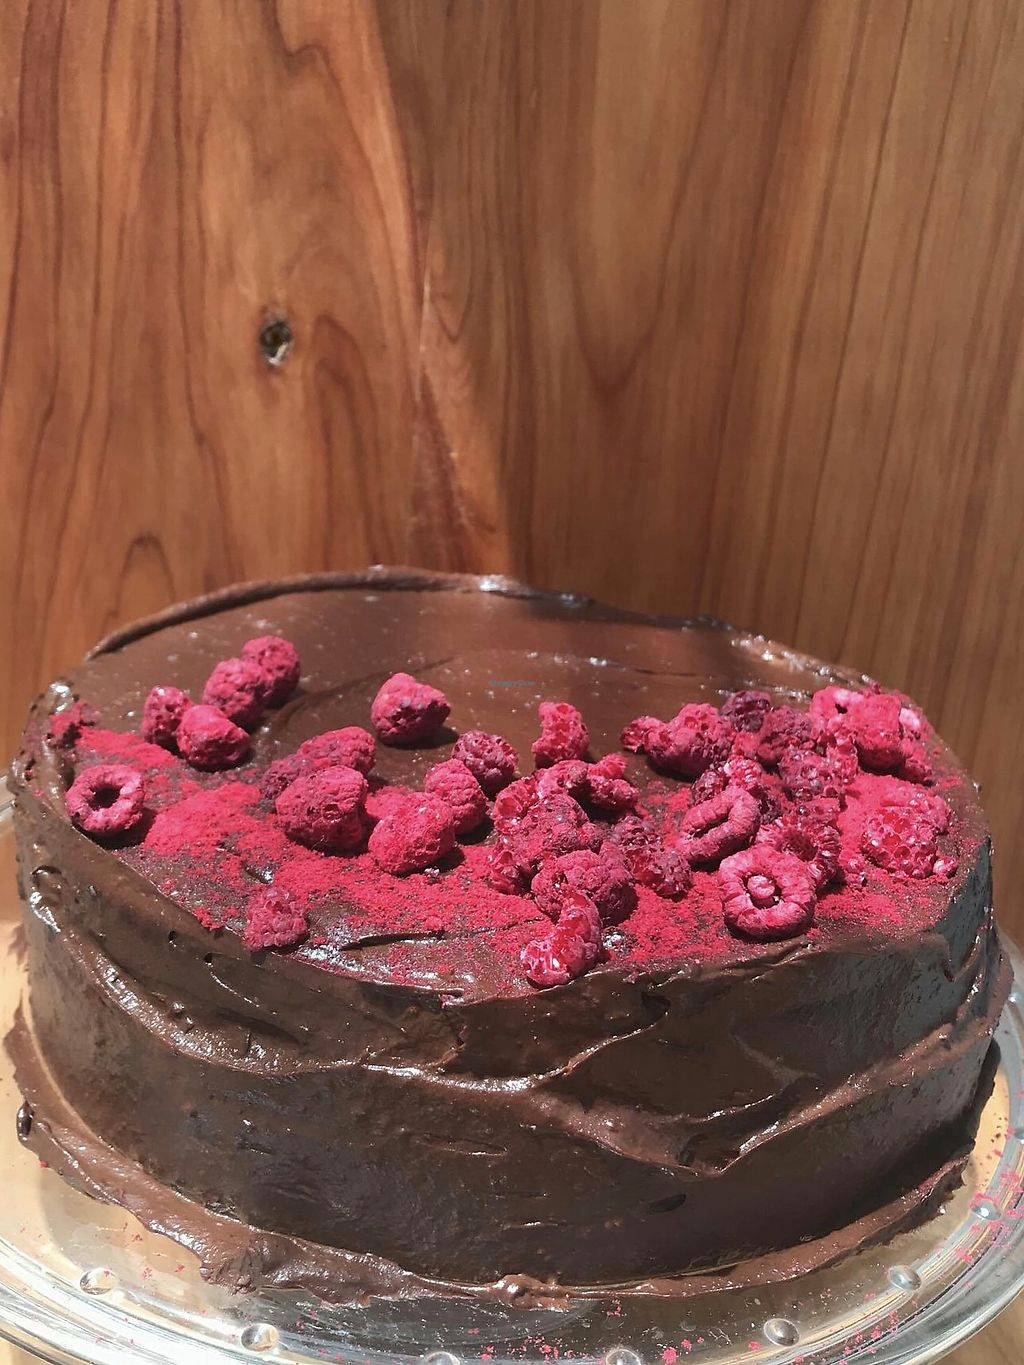 """Photo of The Pantry  by <a href=""""/members/profile/AngieDeMilo"""">AngieDeMilo</a> <br/>Vegan Chocolate Cake  <br/> January 19, 2018  - <a href='/contact/abuse/image/108619/348204'>Report</a>"""